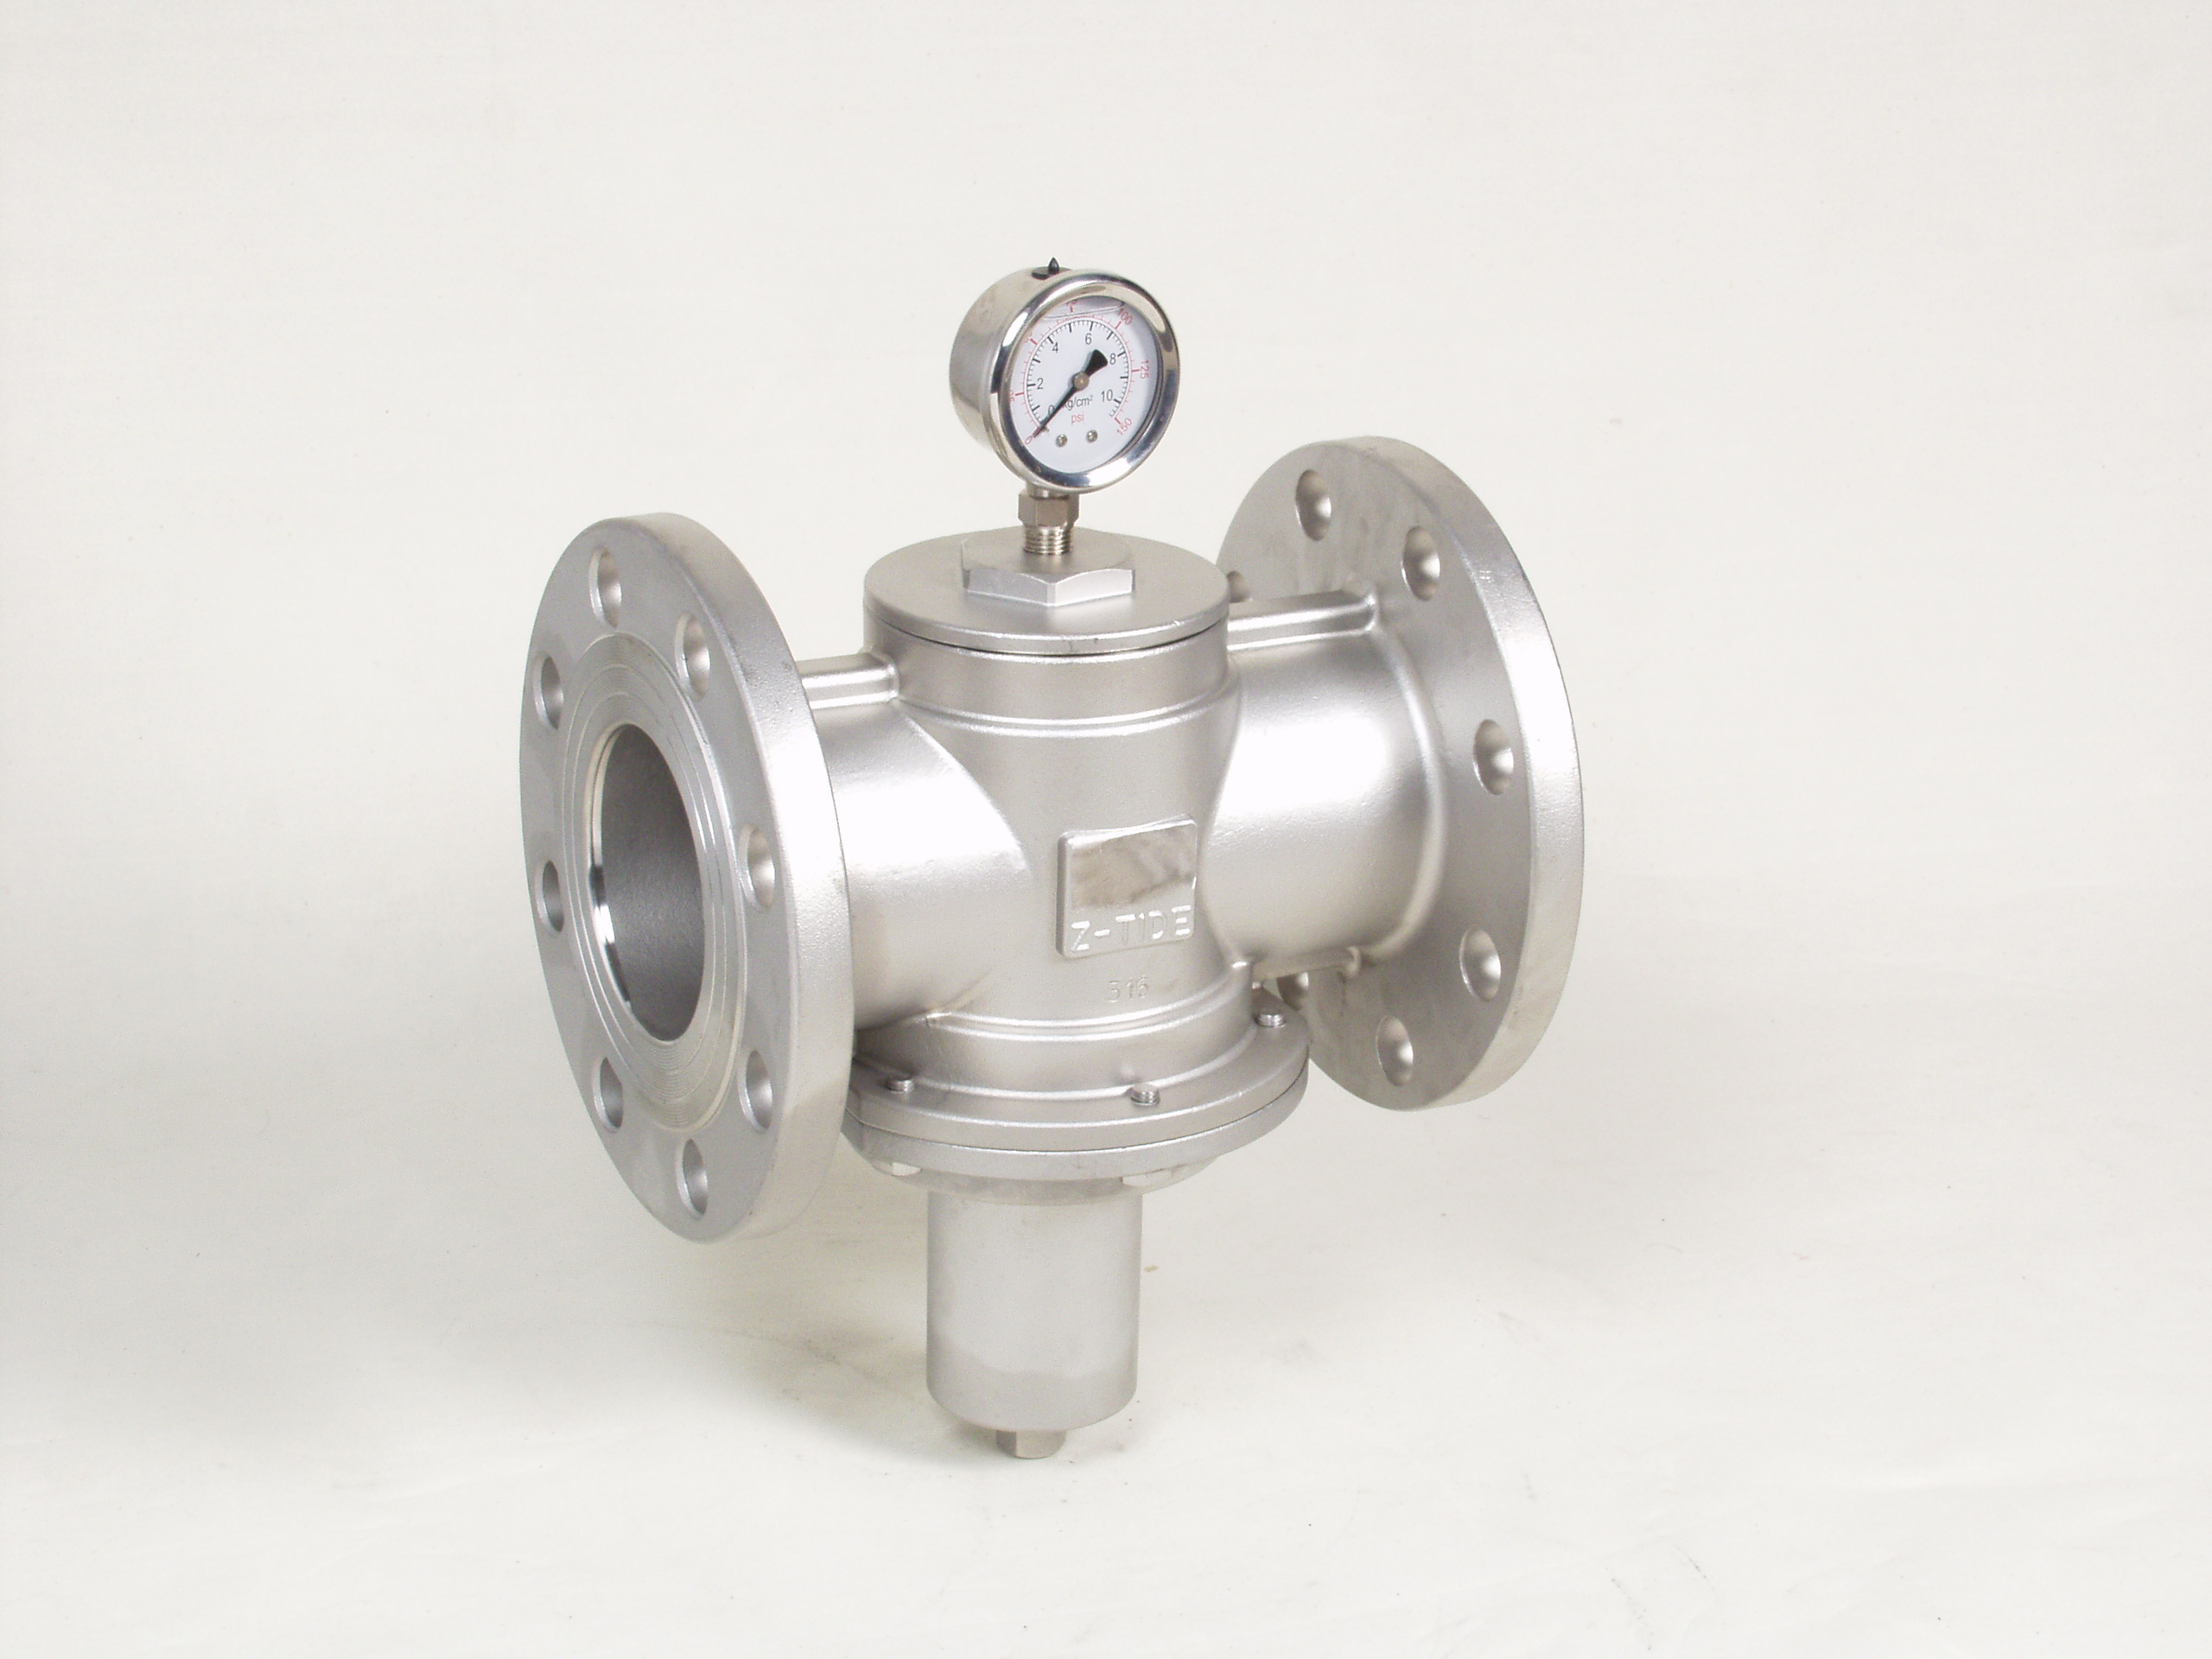 Direct Acting Pressure Regulator / Pressure Reducing Valve_3